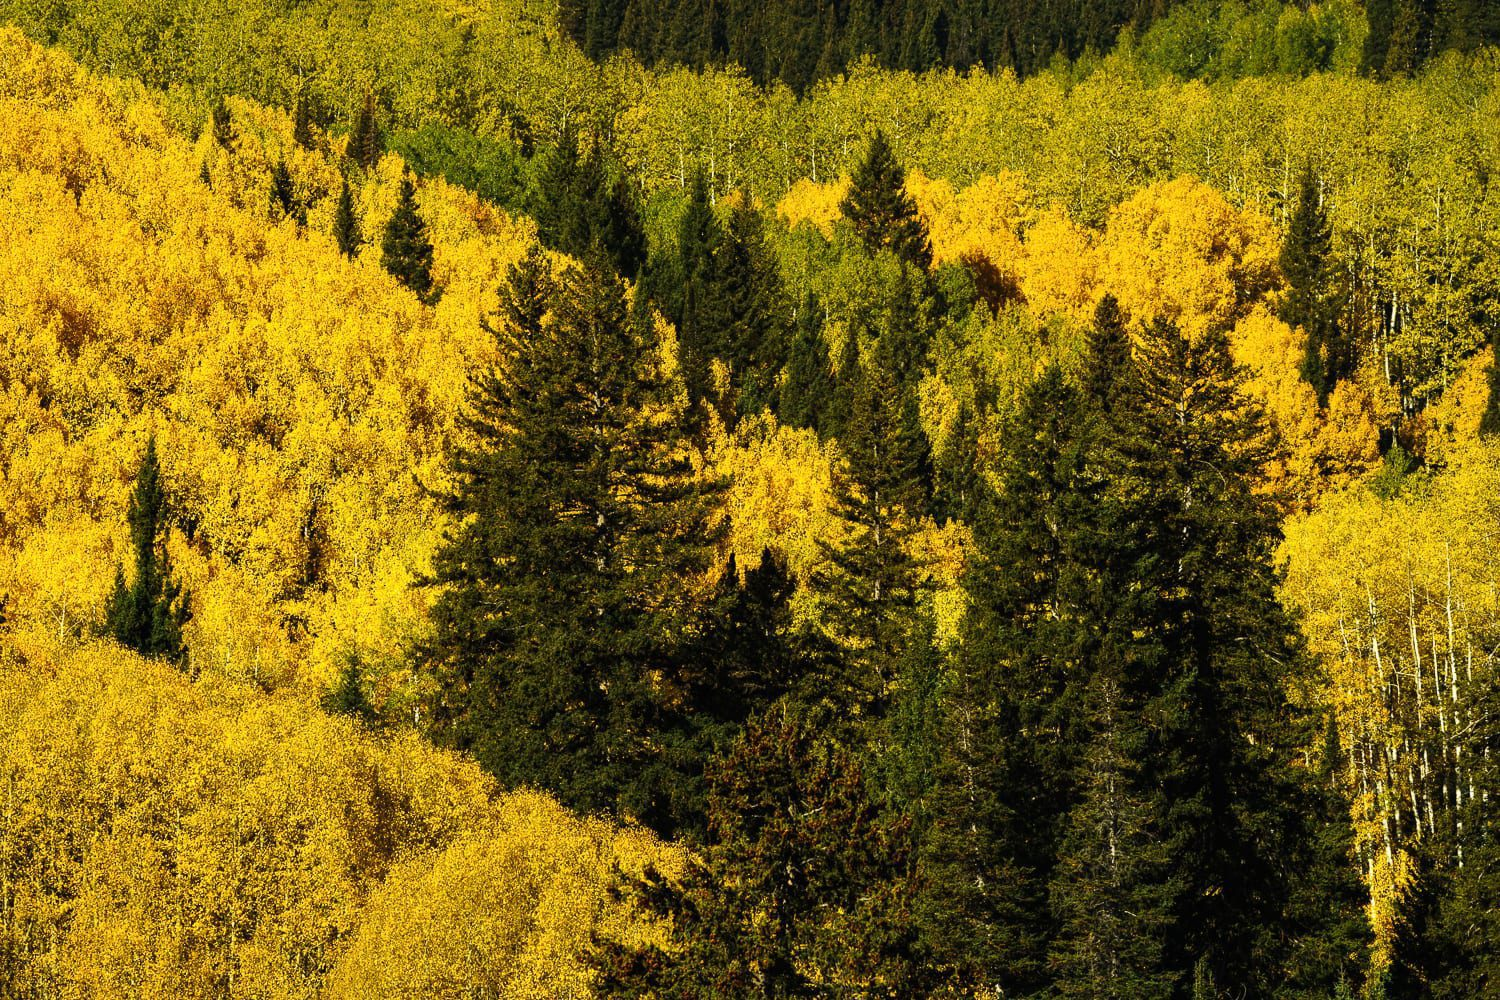 Pine trees and yellow aspens line a mountainside